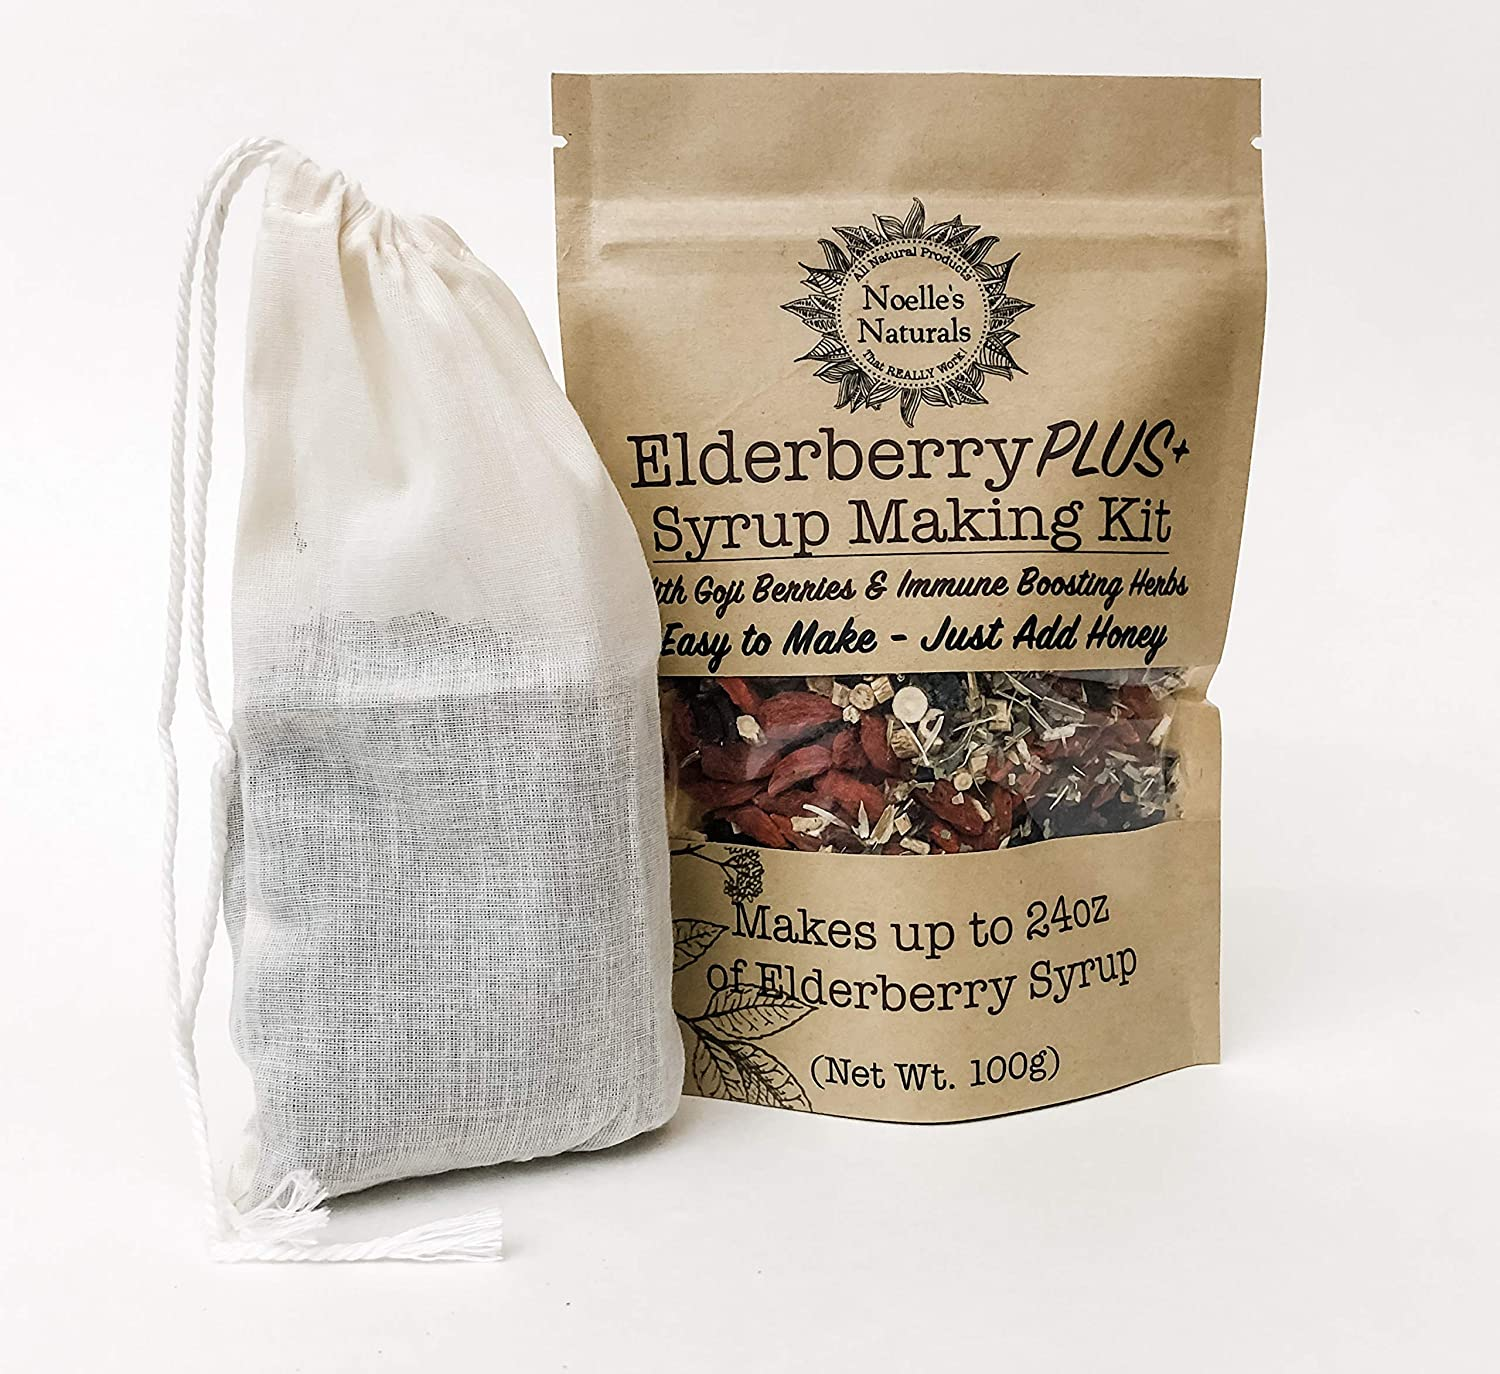 Elderberry Plus+ Syrup Making Max 61% OFF Kit - Just O Add 24oz Portland Mall Your Makes